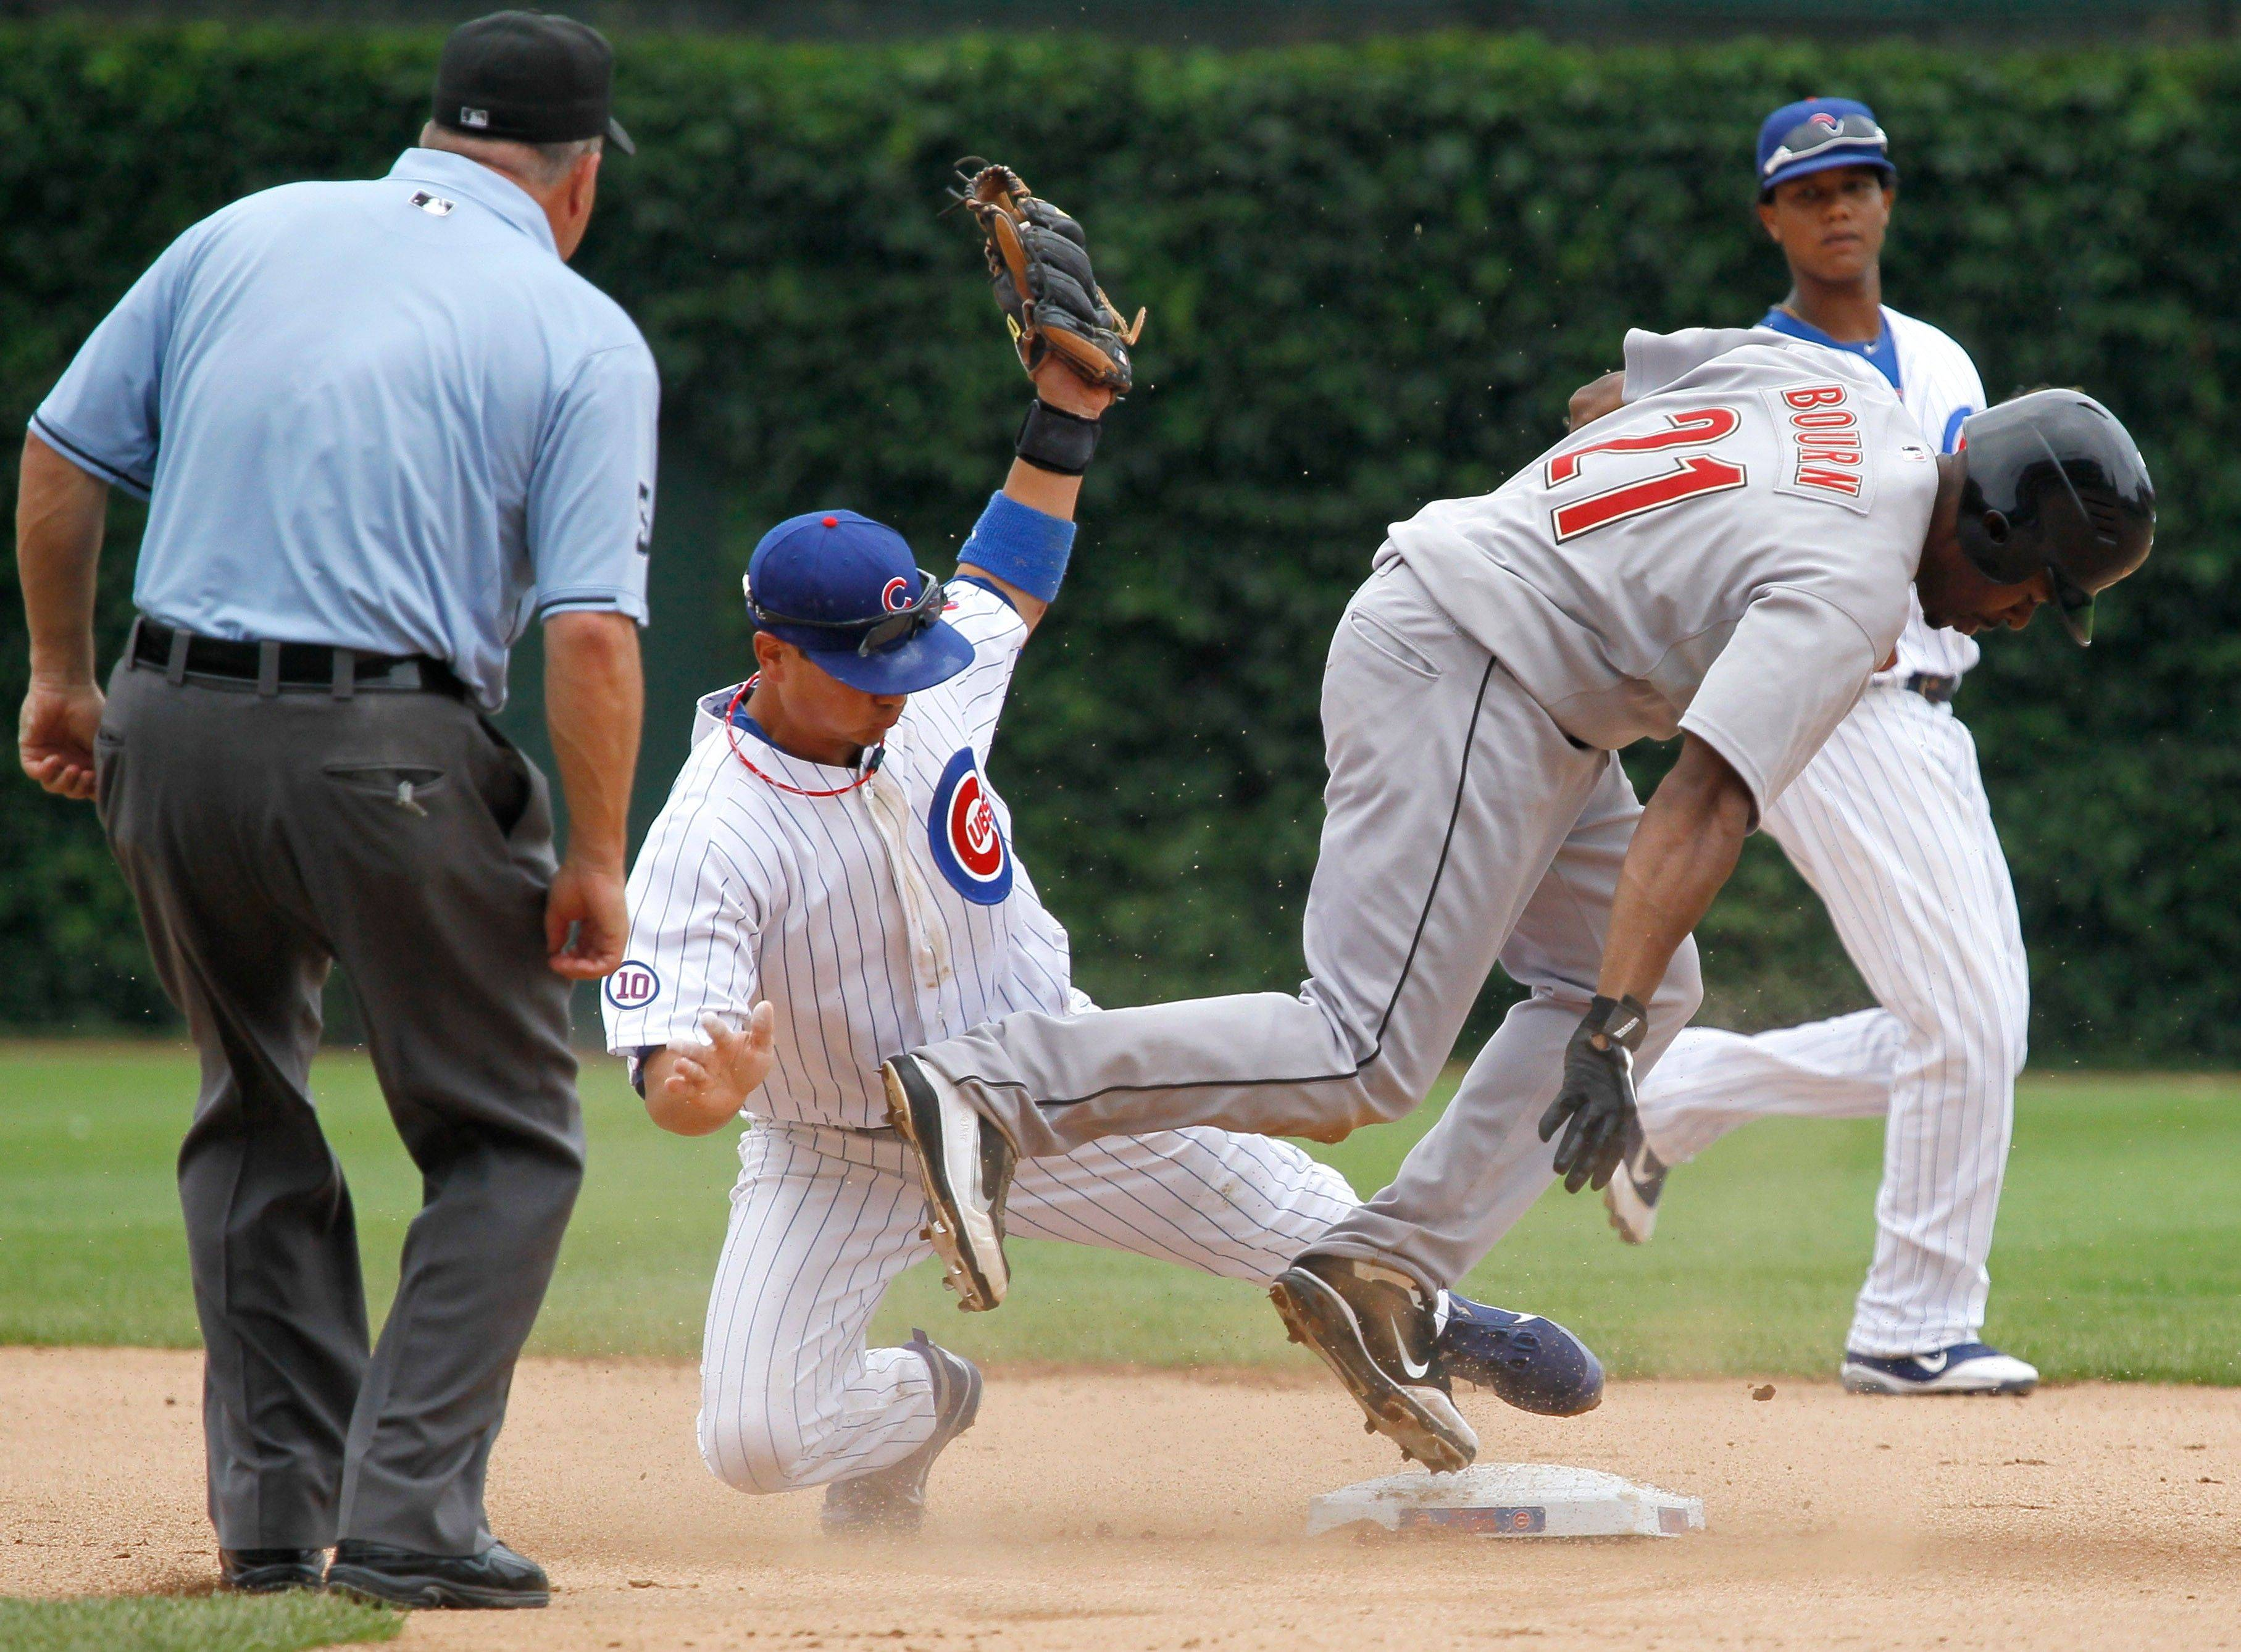 Houston Astros' Michael Bourn, right, is caught stealing second by Cubs second baseman Darwin Barney during the fifth inning of a baseball game Saturday.